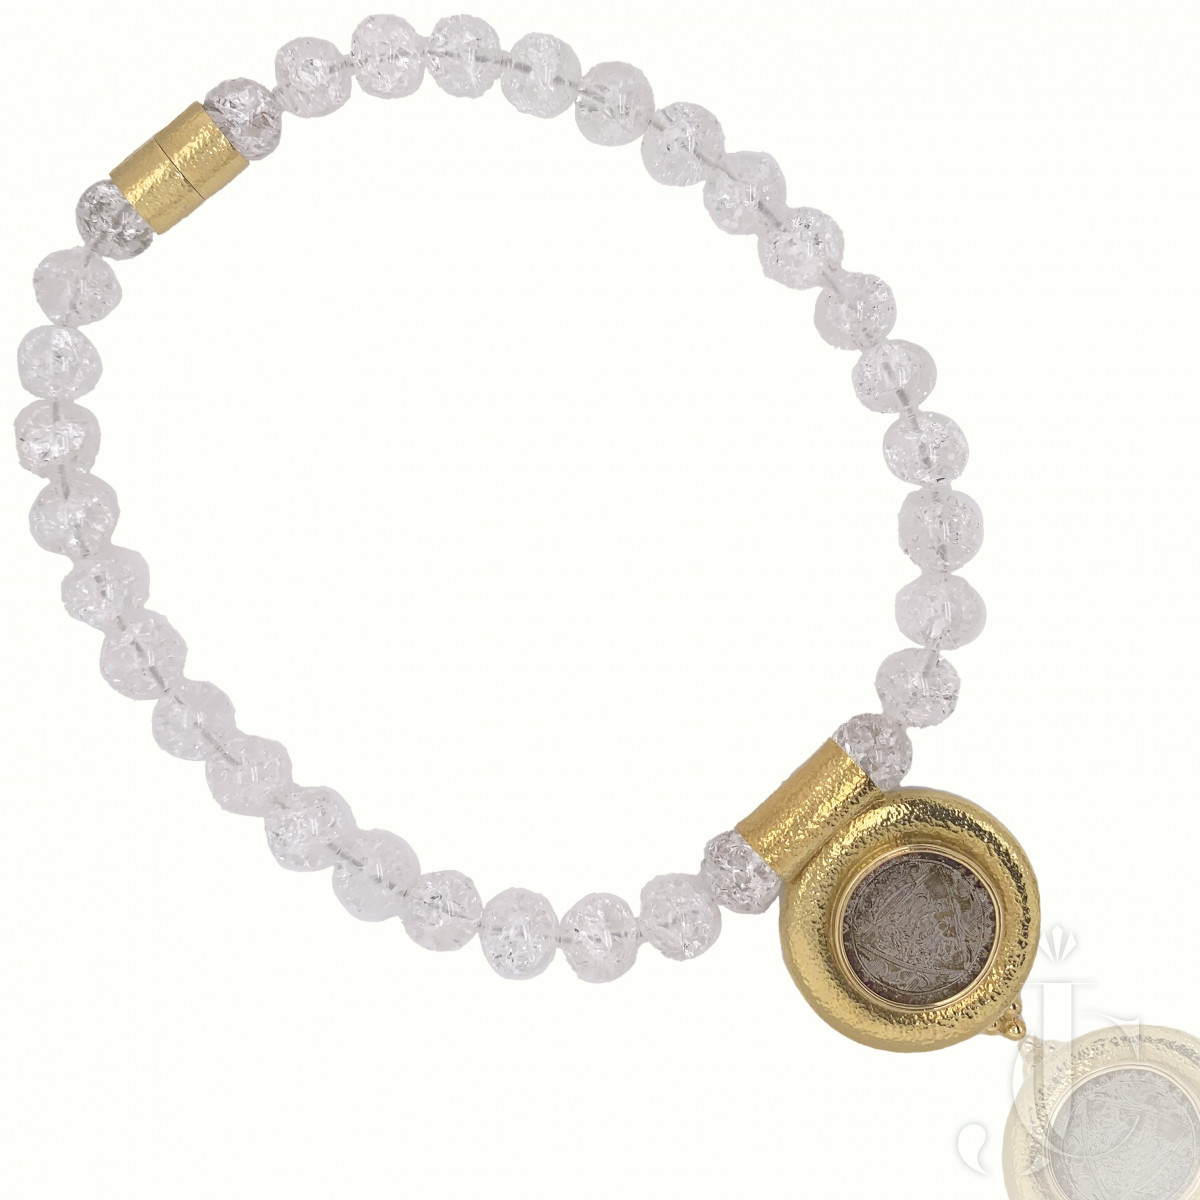 E.Gage Crystal Bead 18kt yg Coin Necklace